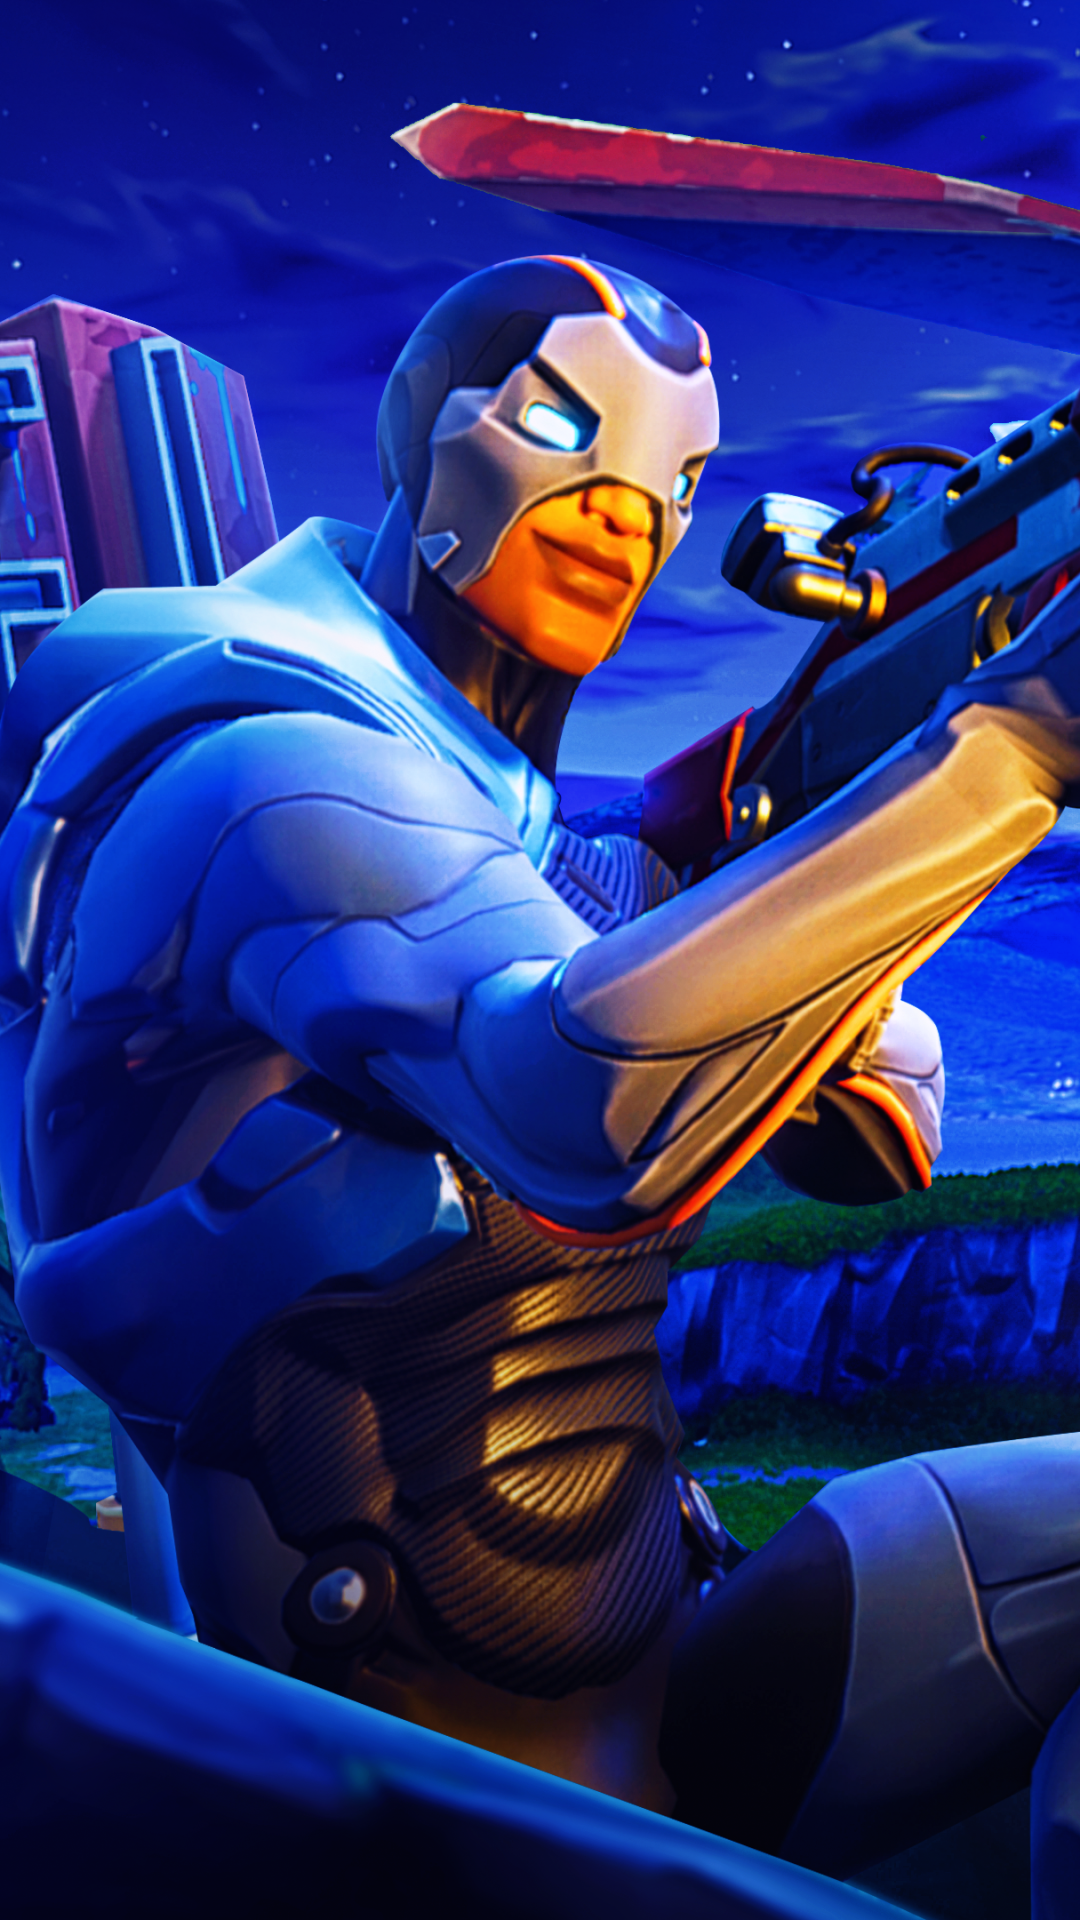 Video Game Fortnite 1080x1920 Wallpaper Id 723216 Mobile Abyss